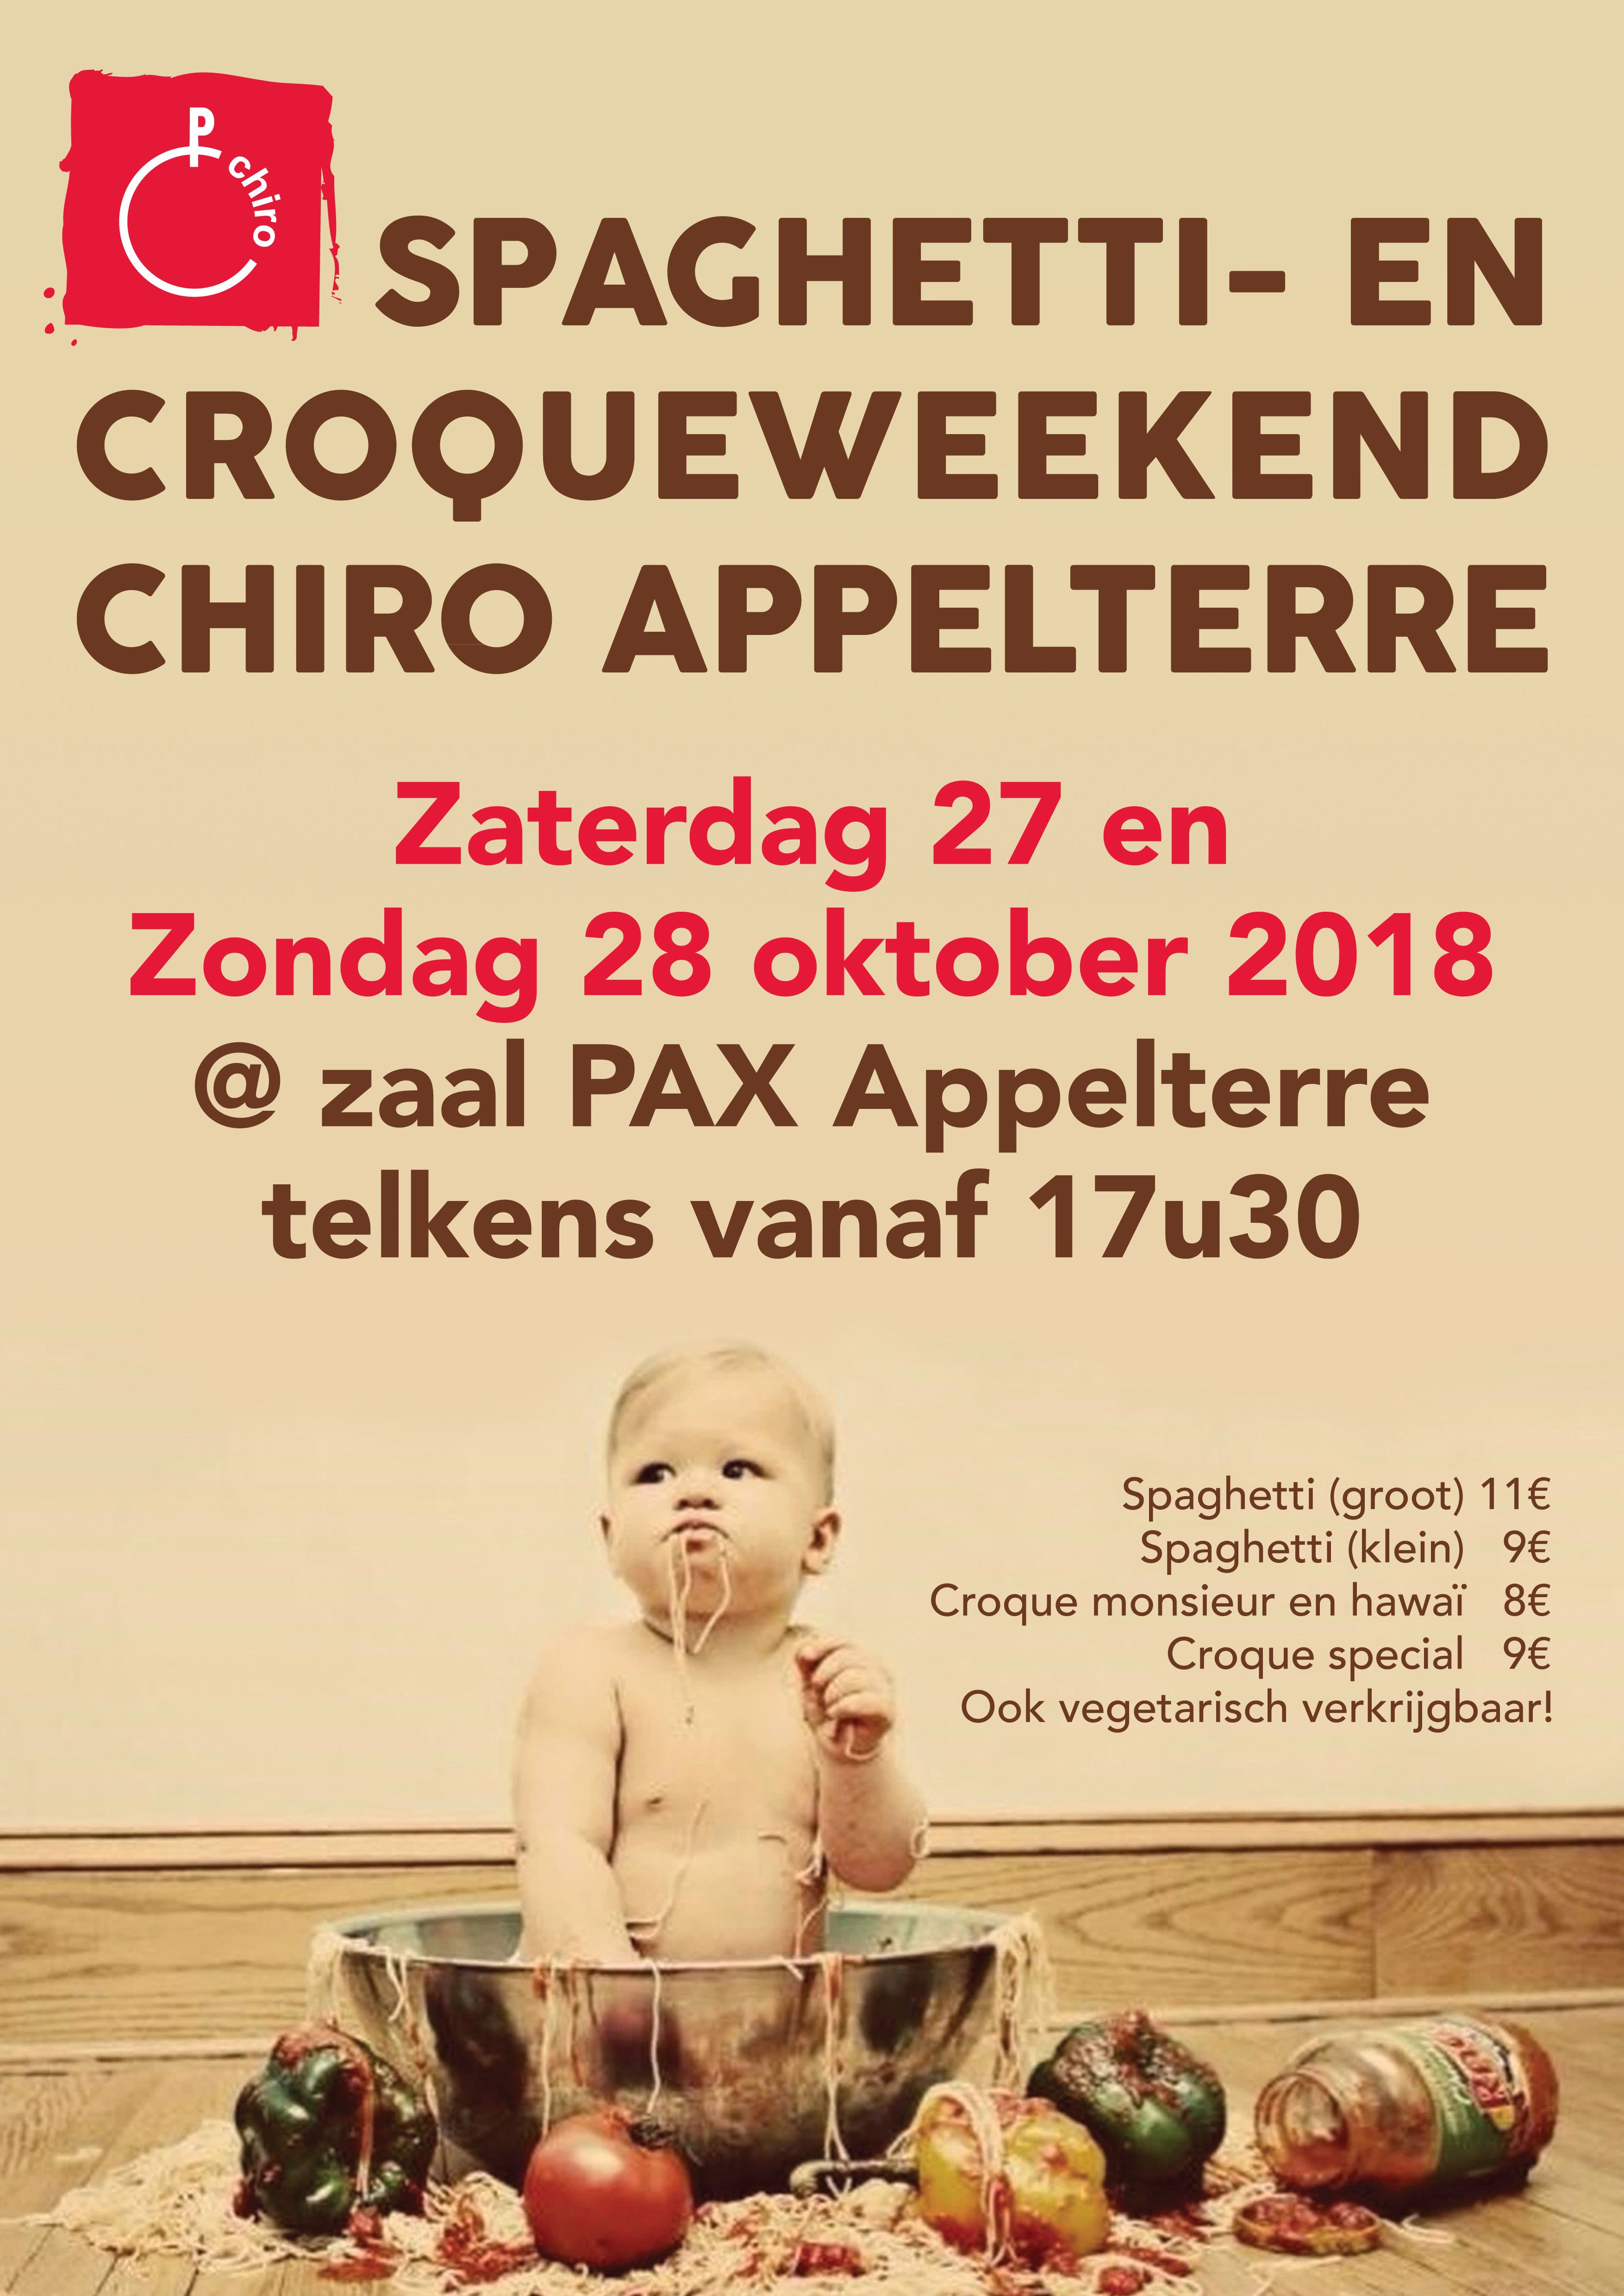 Spaghettiweekend Chiro Appelterre